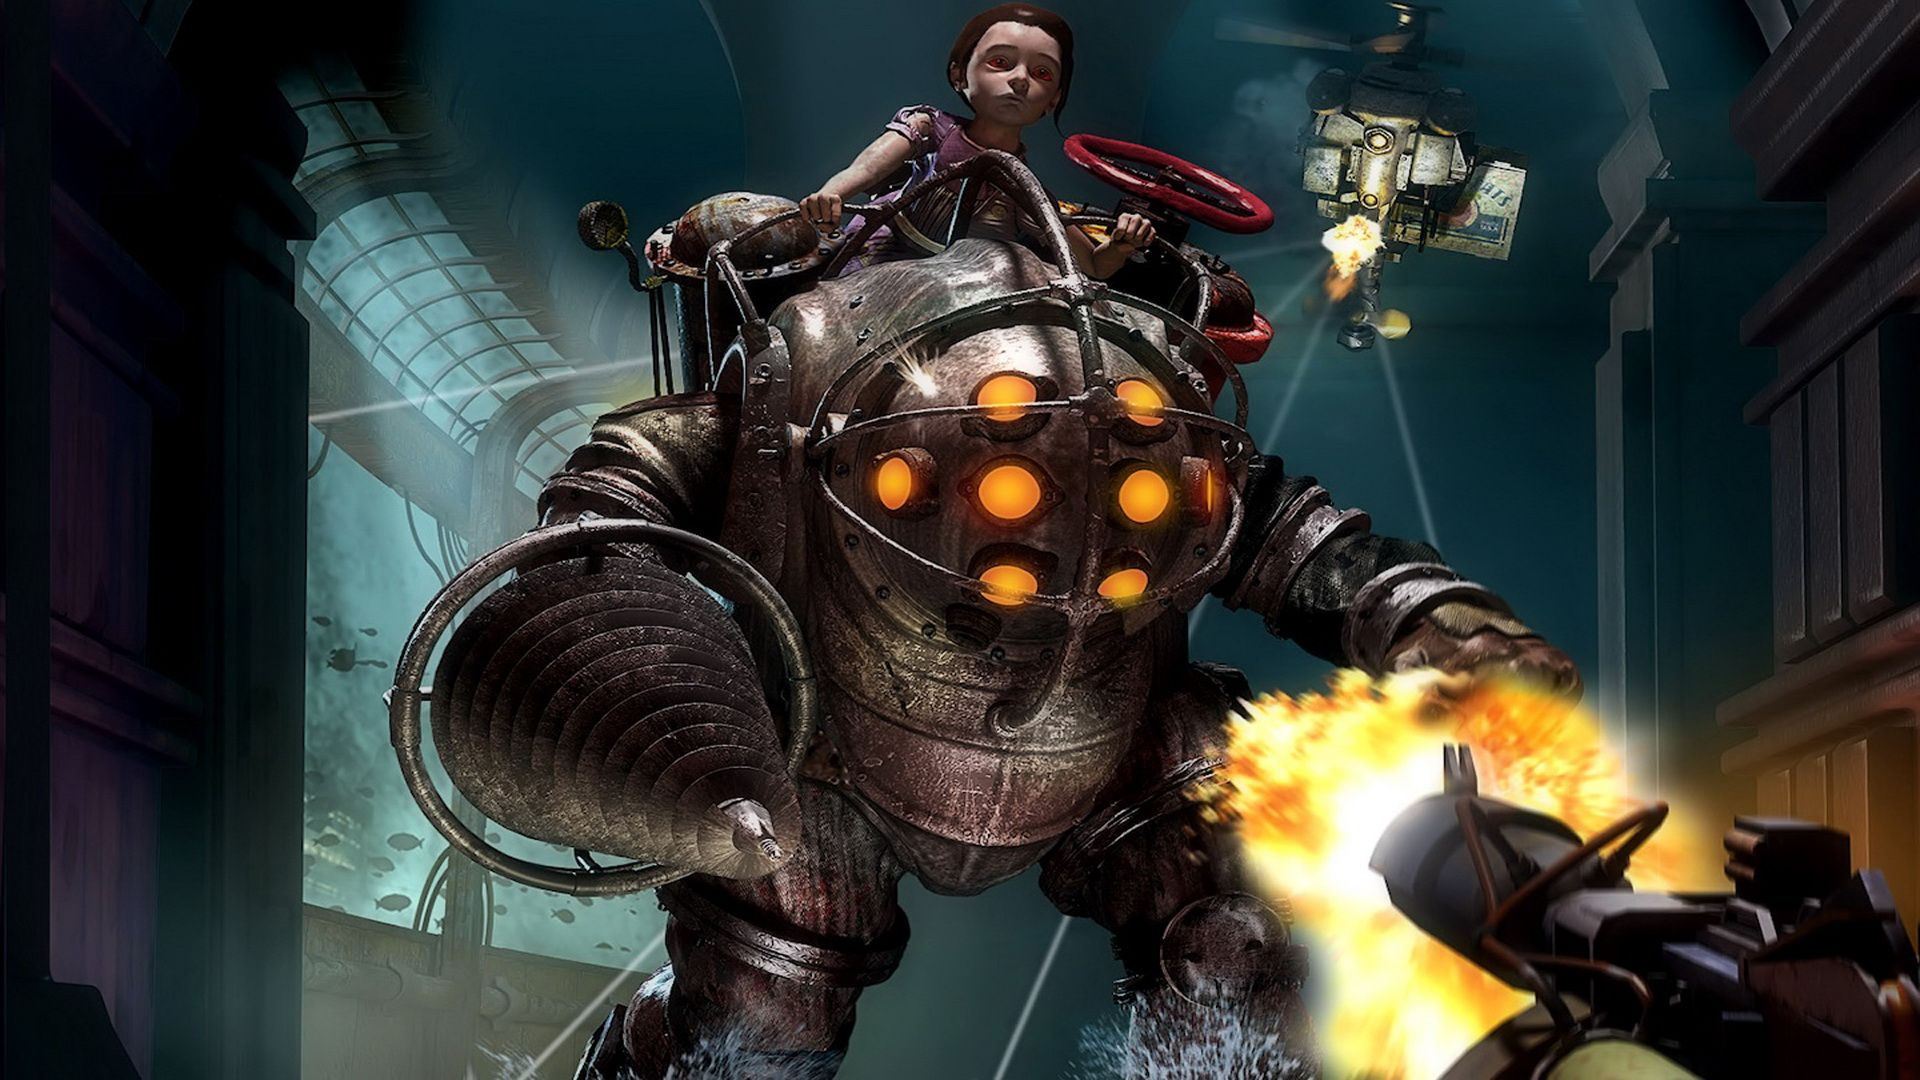 Big Daddy Bioshock Bioshock Bioshock Game Bioshock Collection